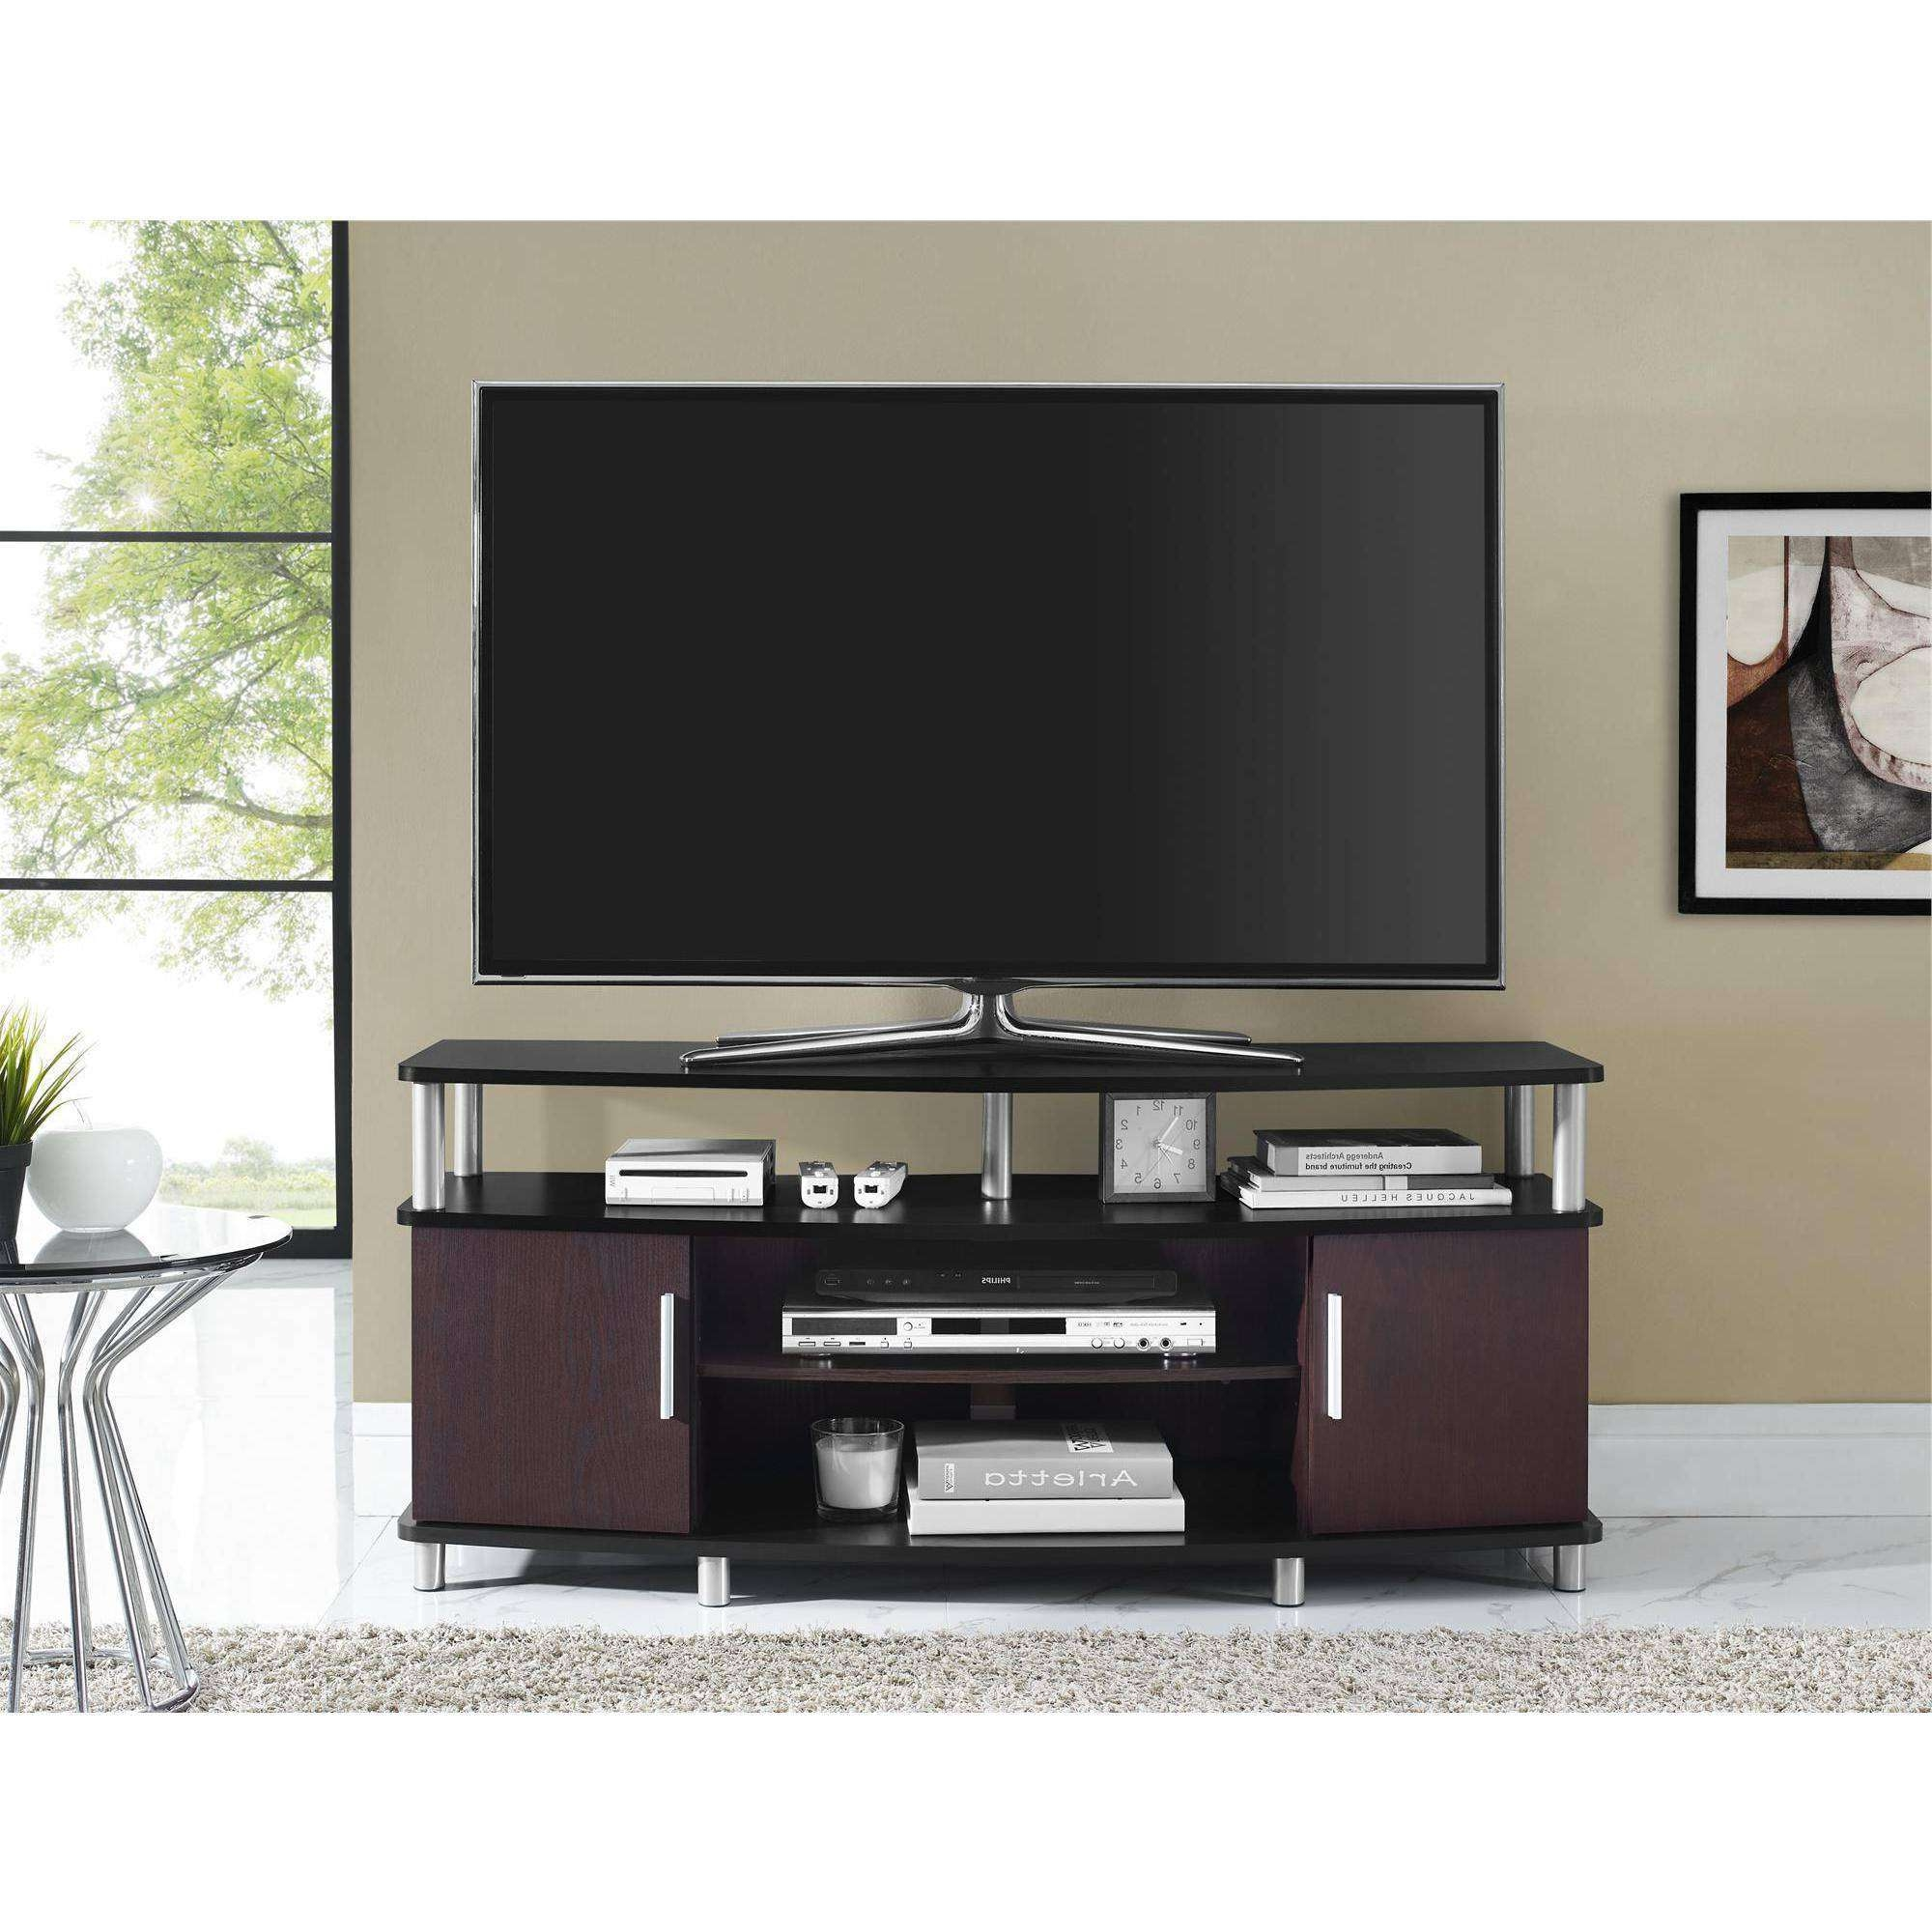 Tv Stand For Coaster Stands Console Inch Walmart Corner Flattv Lg With Regard To 50 Inch Corner Tv Cabinets (View 18 of 20)